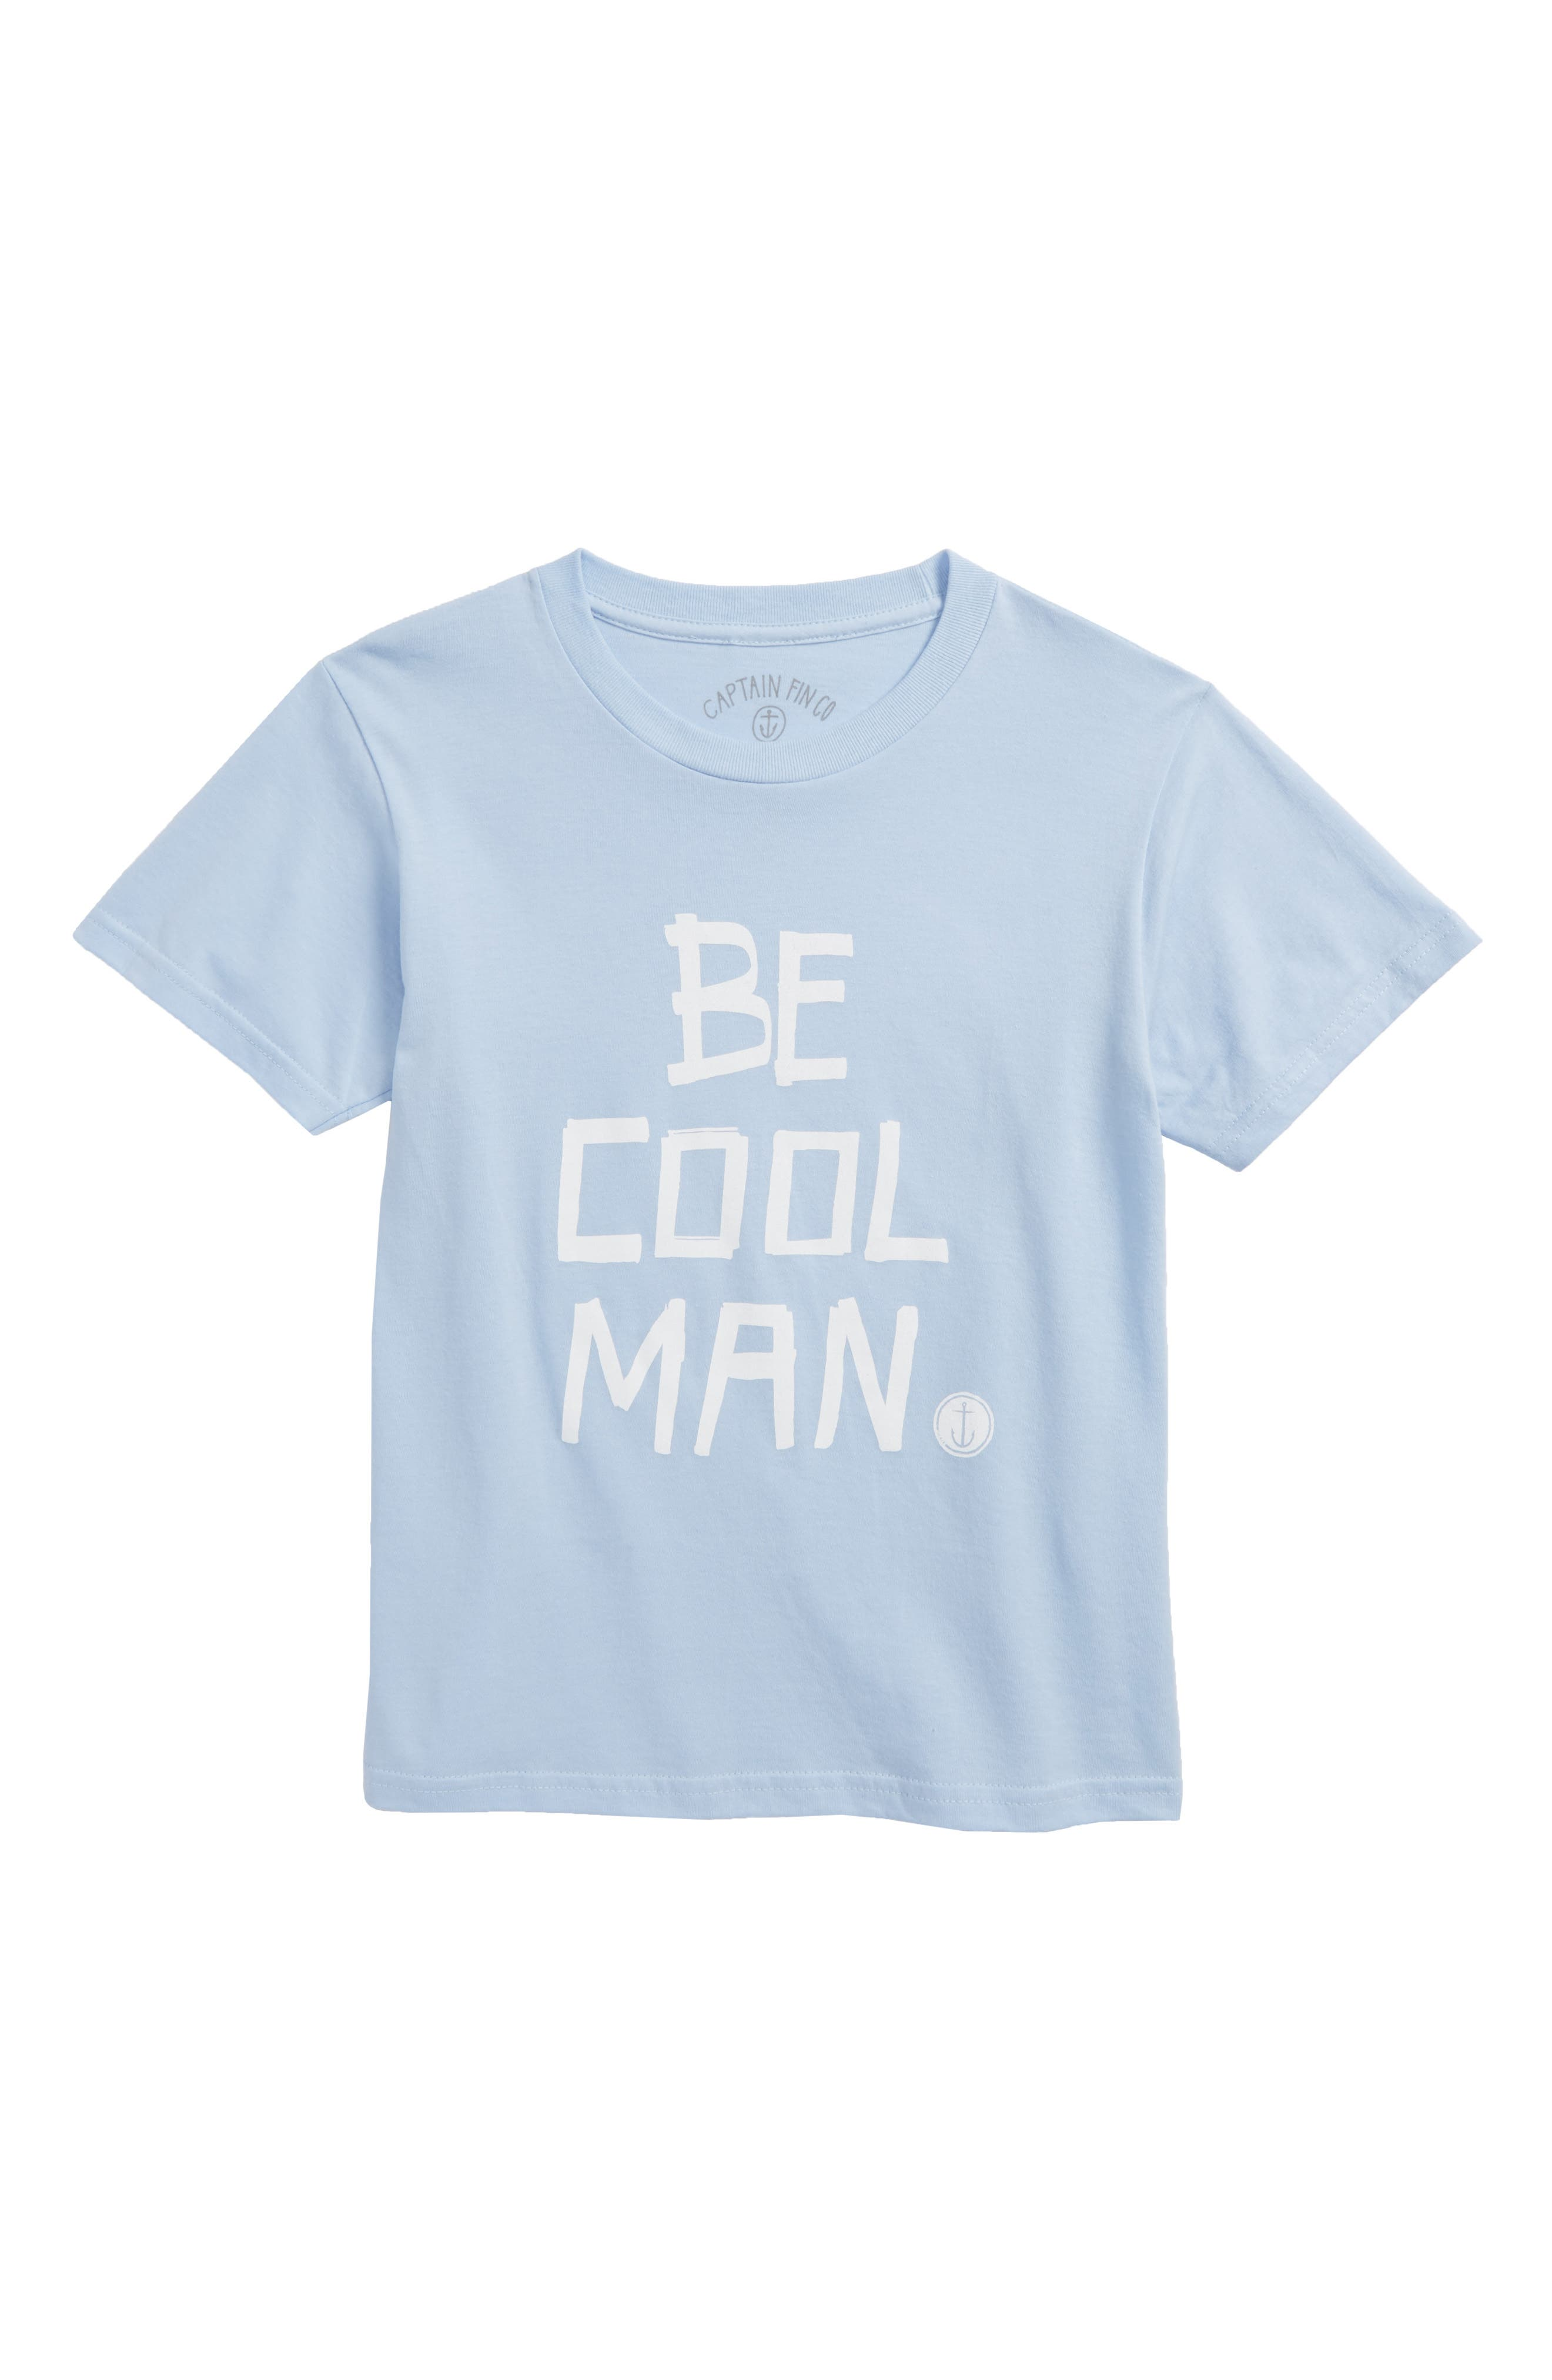 Captin Fin Be Cool Man Graphic T-Shirt,                         Main,                         color, Sky Blue